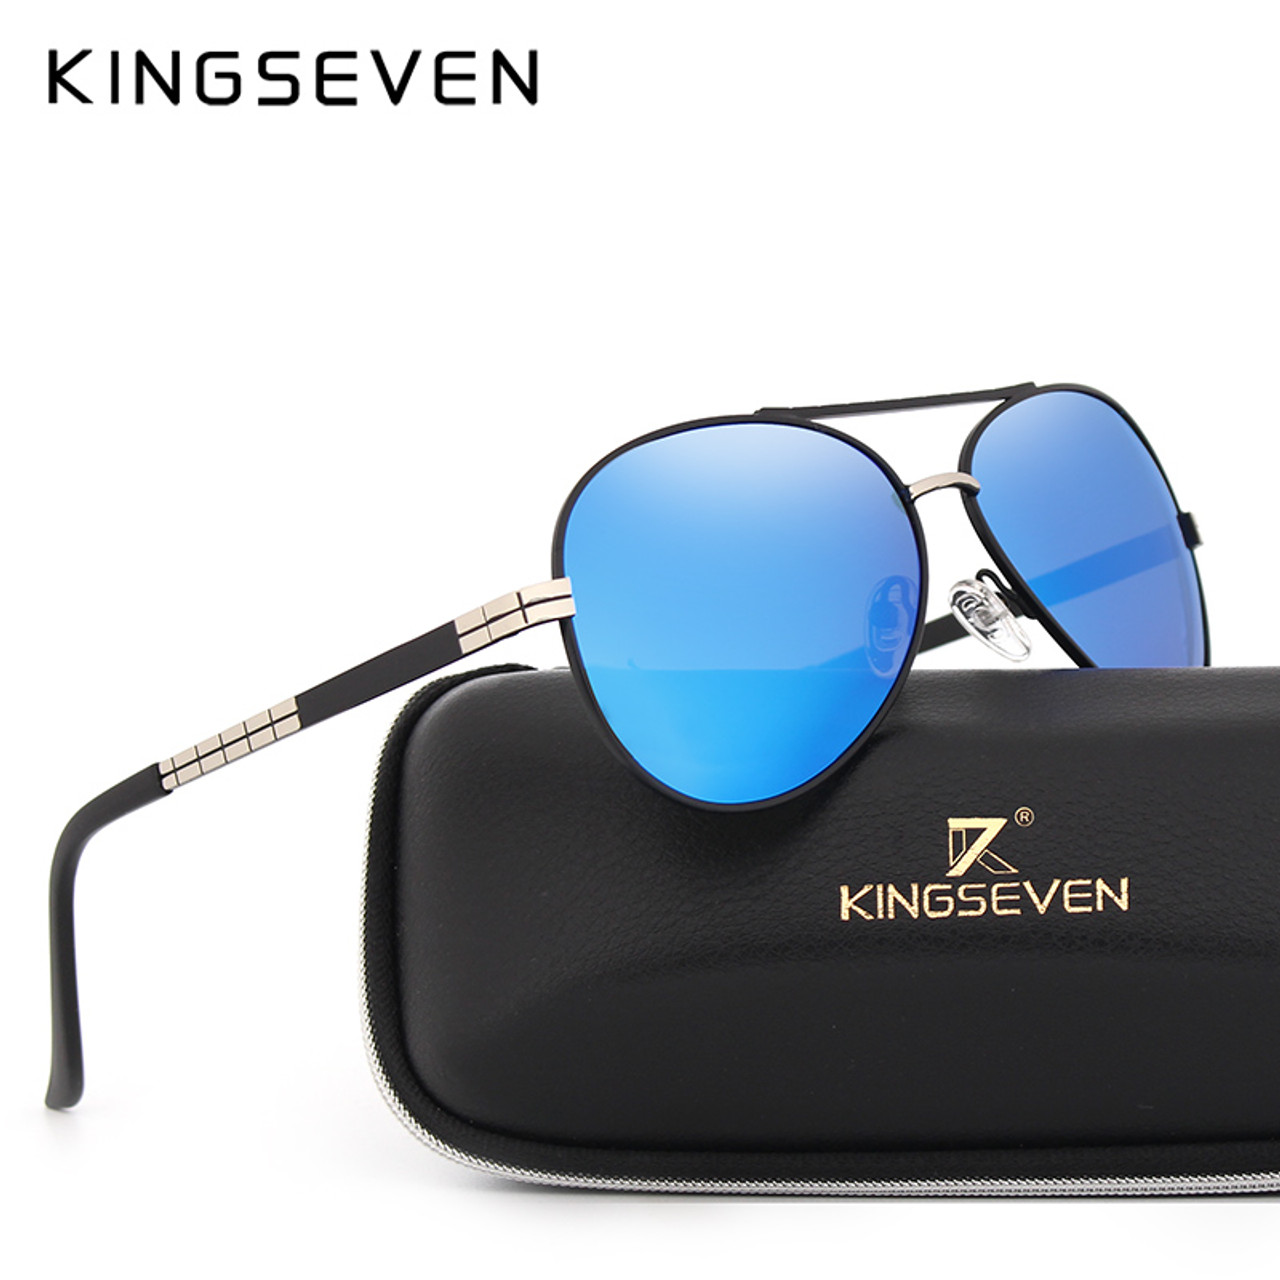 20cde843f5f KINGSEVEN Fashion Classic Brand Sunglasses Men s HD Polarized Aluminum  Driving Luxury Design Sun glasses For men ...